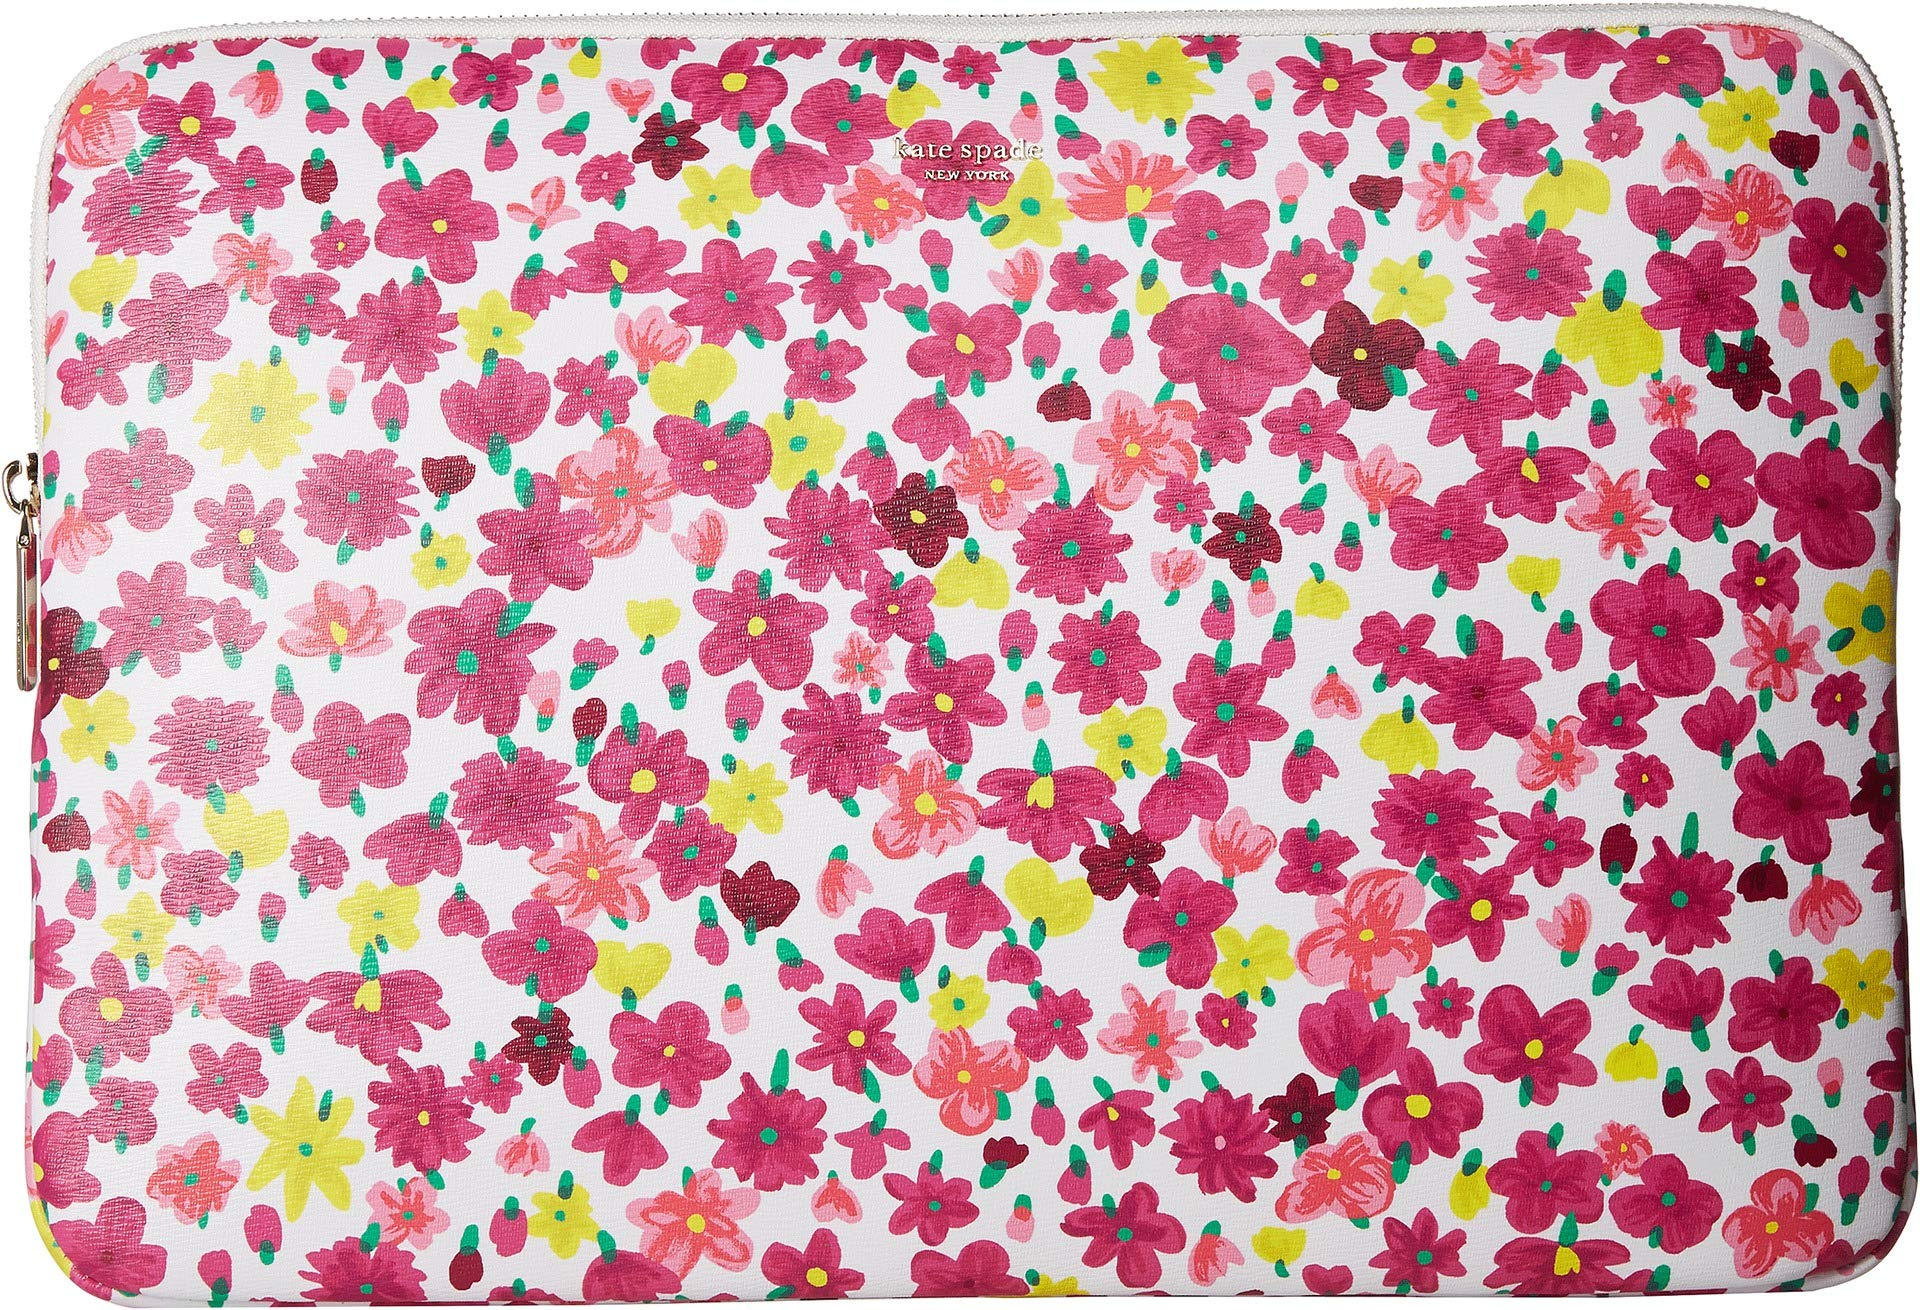 Kate Spade New York Women's Marker Floral Universal Laptop Sleeve Optic White Multi One Size by Kate Spade New York (Image #1)